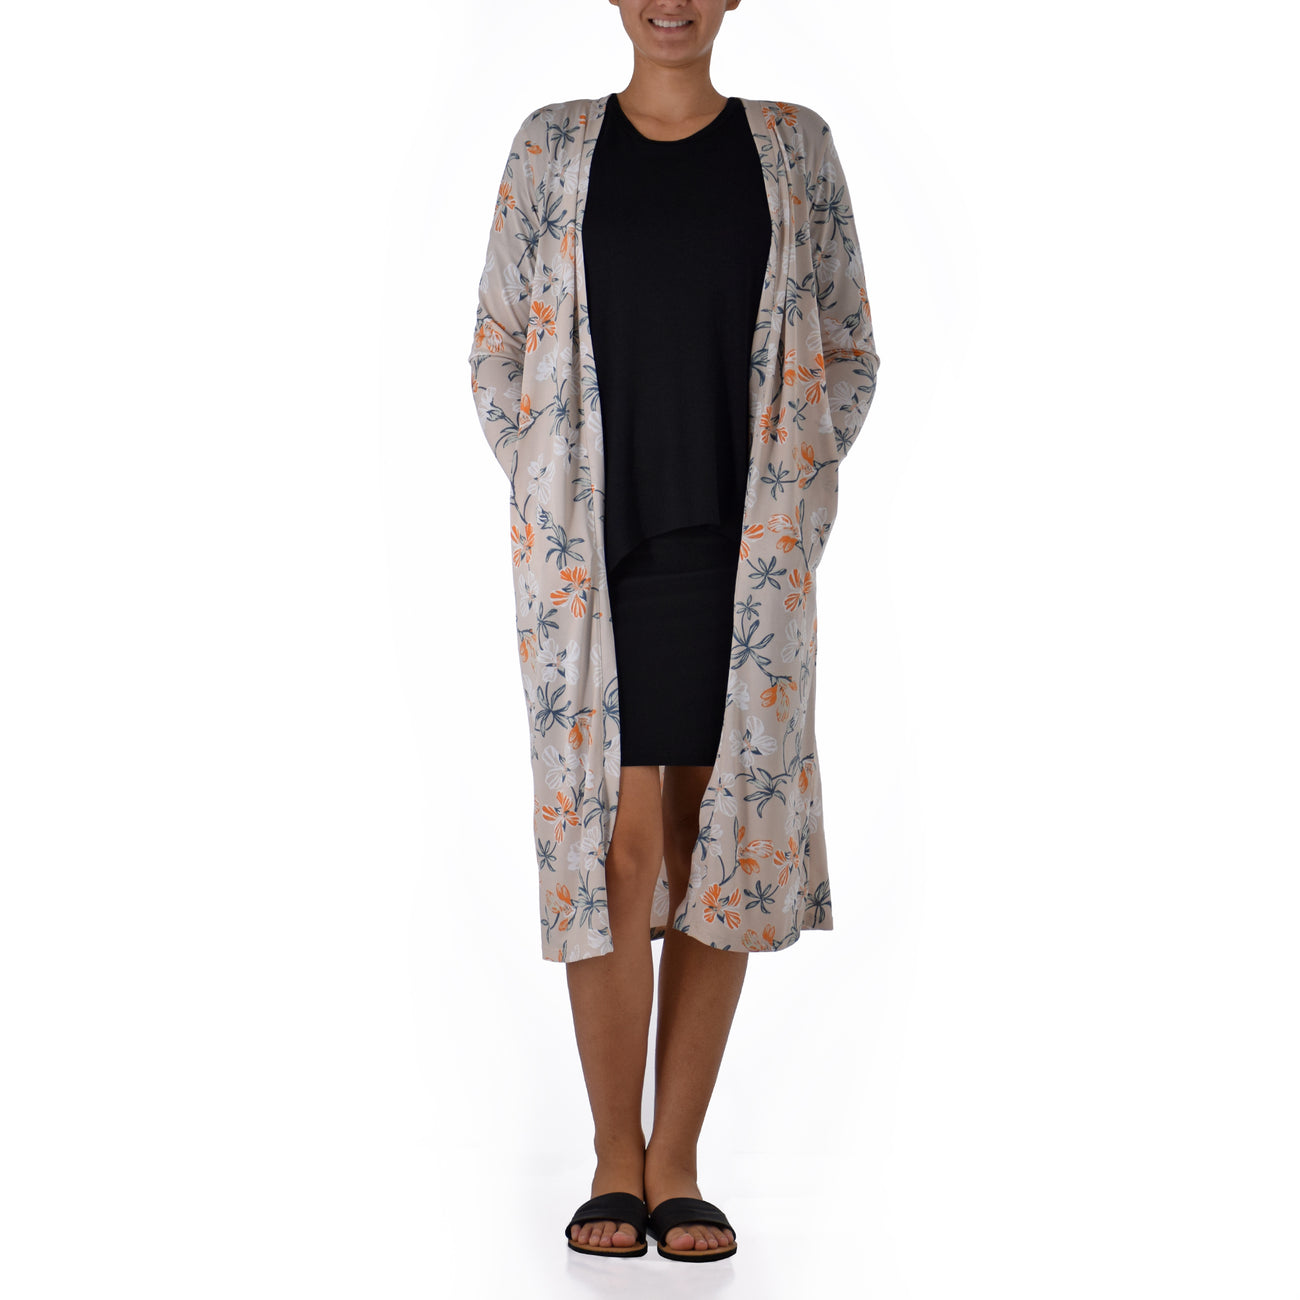 PUANANI LONG CARDIGAN